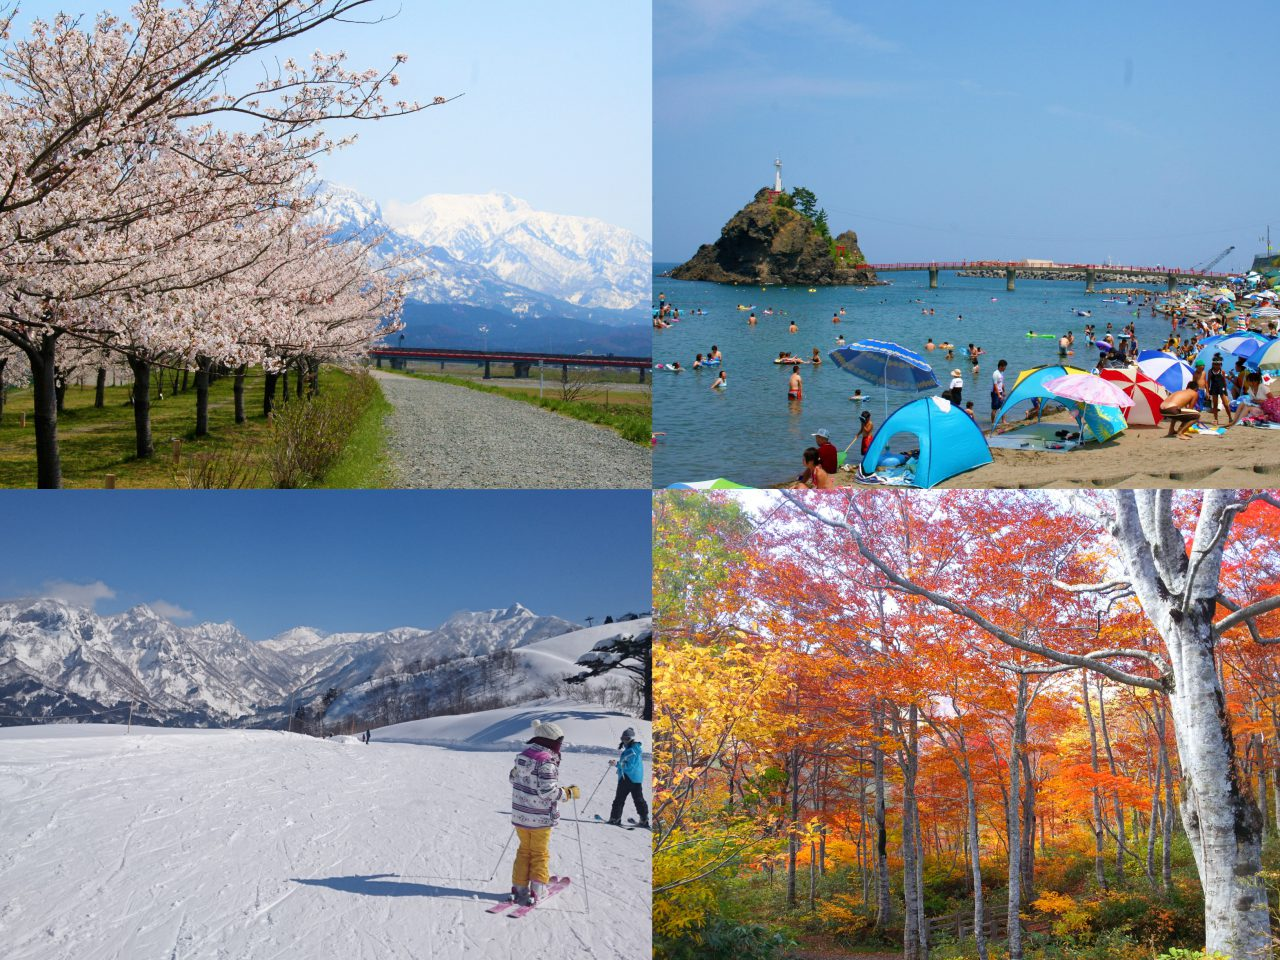 Itoigawa's Four Seasons